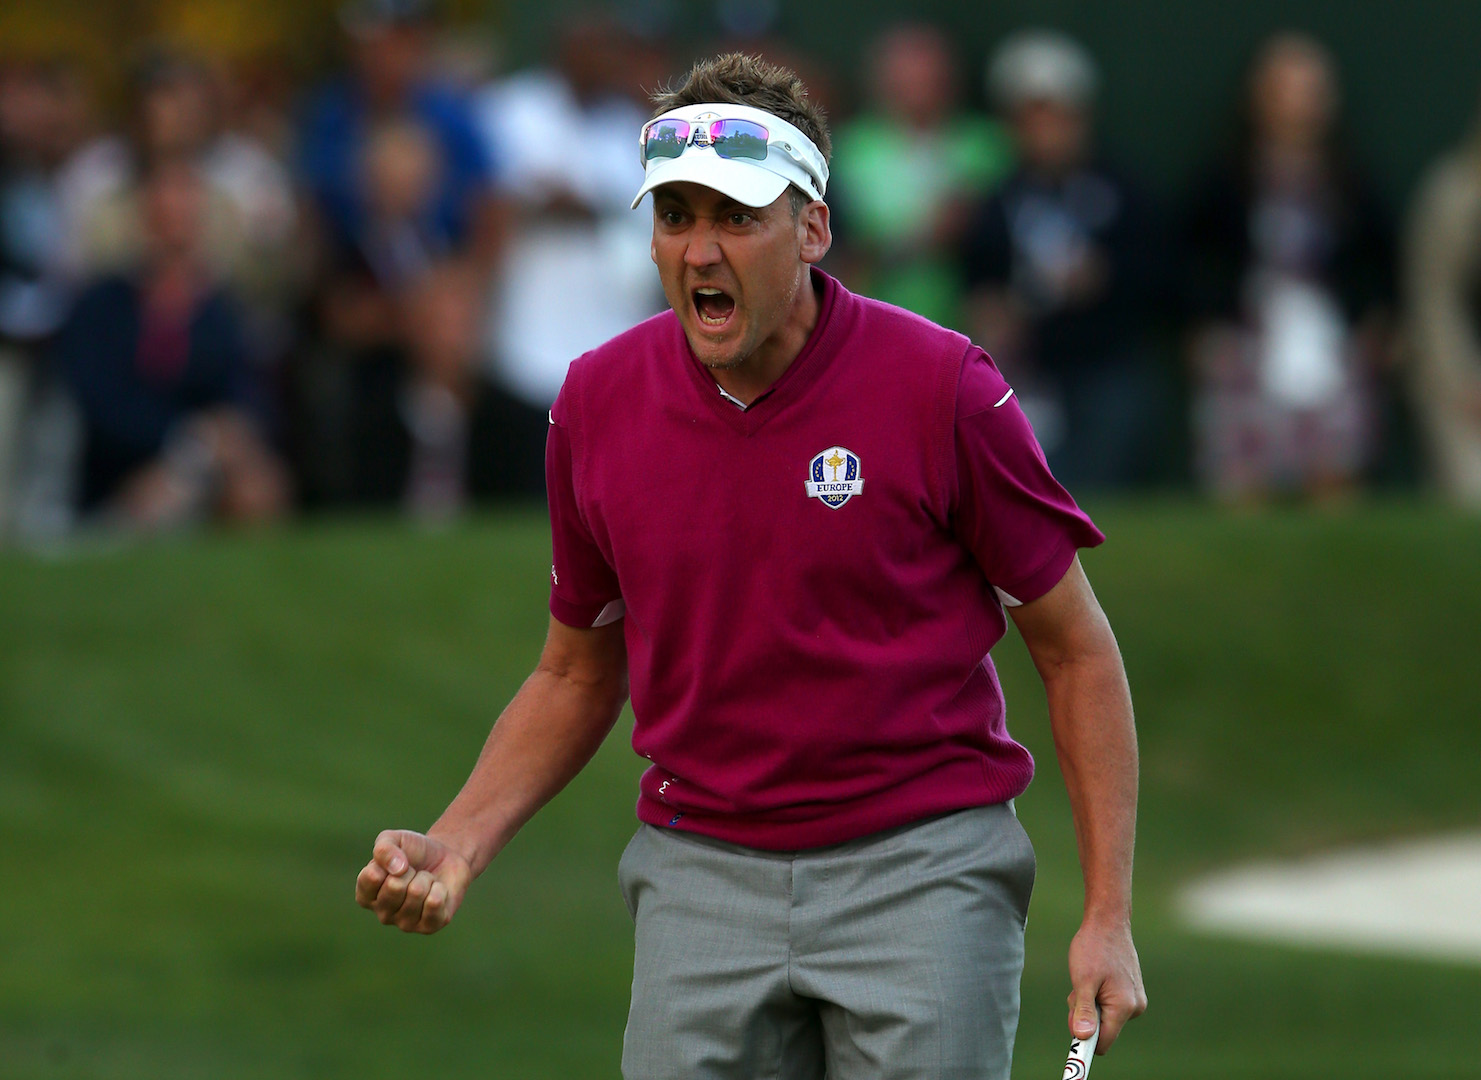 Ian Poulter retains Tour card